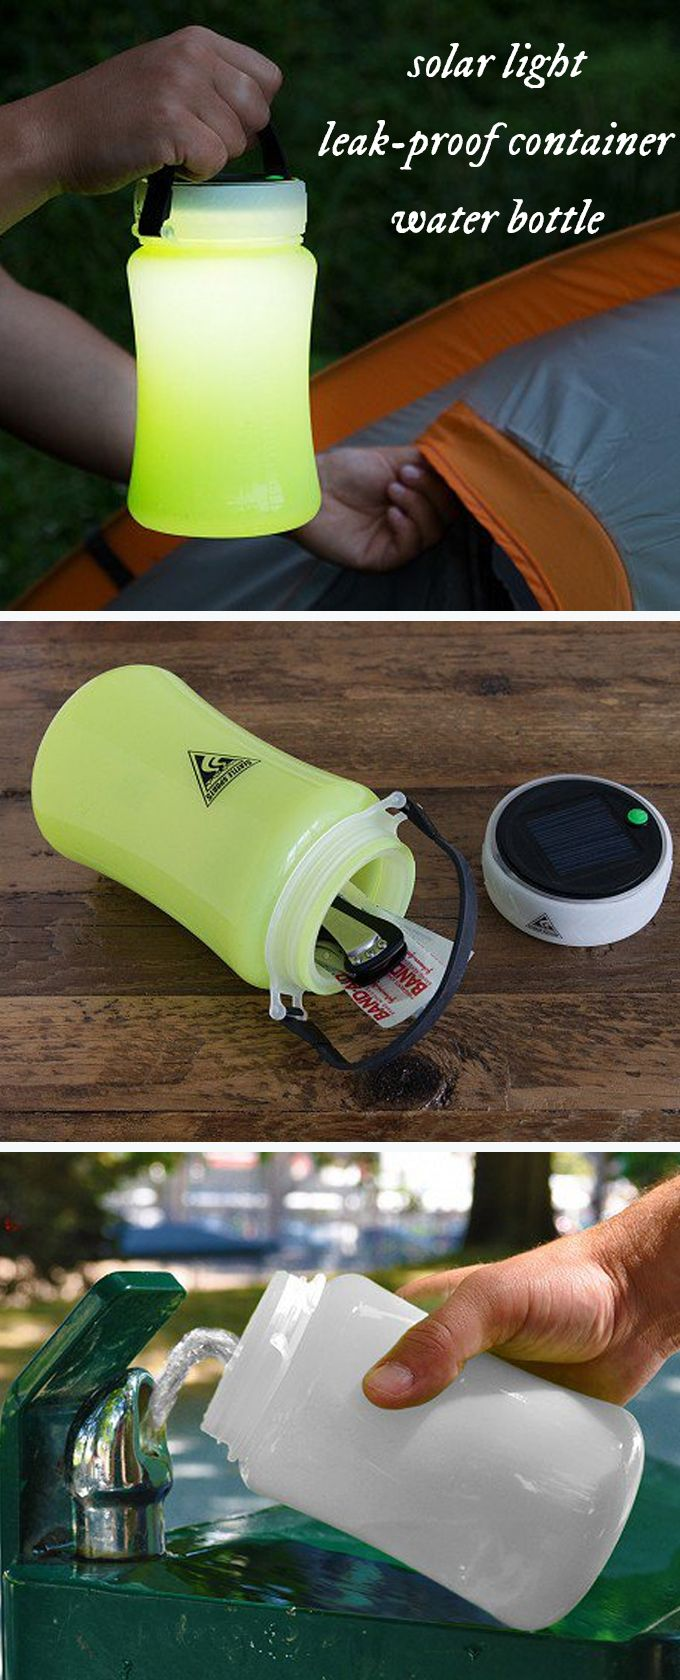 Charge, store, drink, and light up the night with one deceivingly simple device. FireWater is a waterproof storage container, solar powered light, and water bottle all in one. The lantern loads up on the sun's energy or can be charged by its USB port.